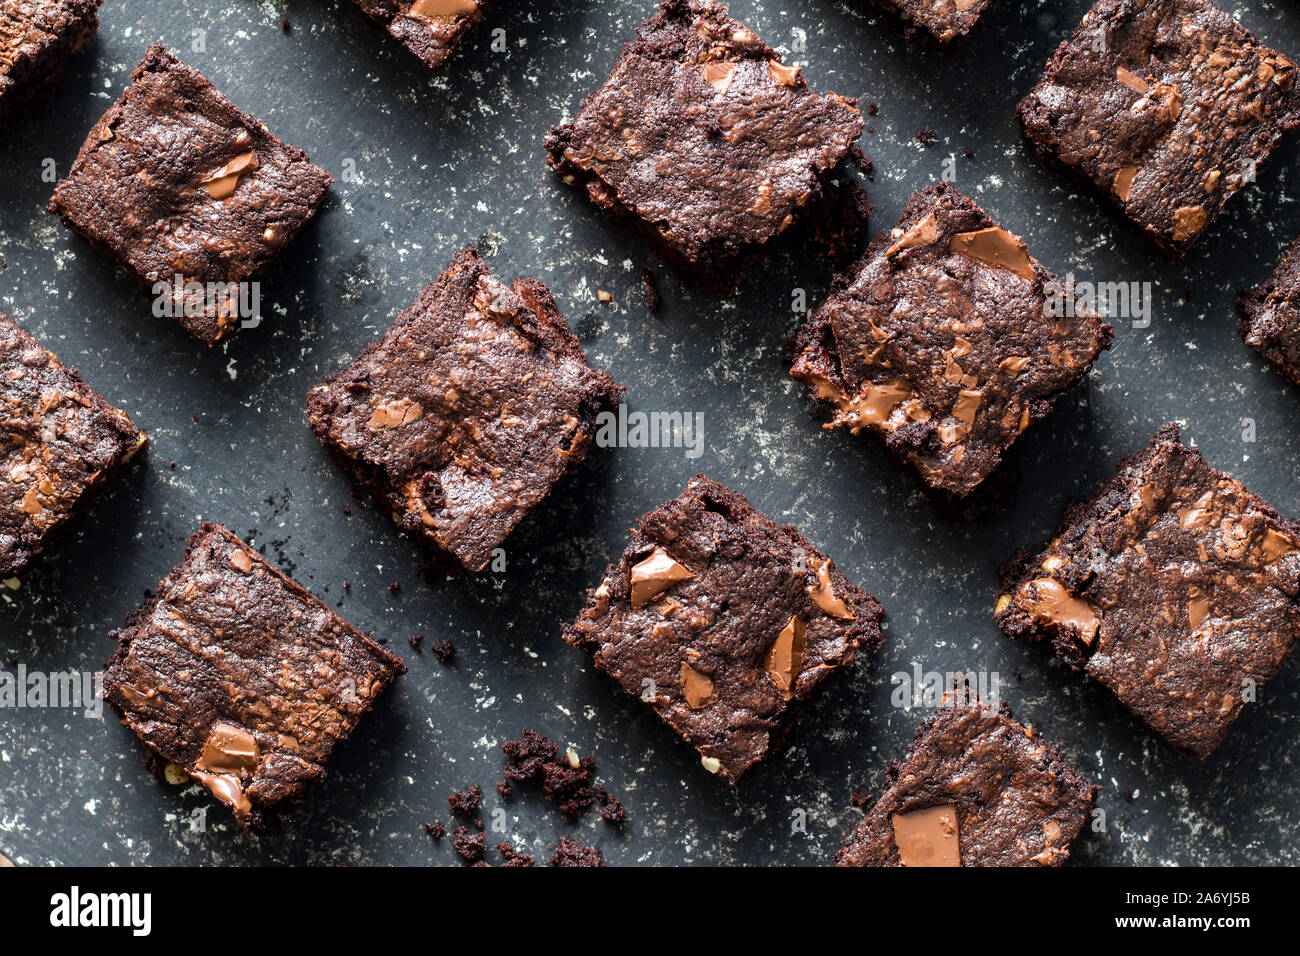 Chocolate brownies on mottled grey and white background - top view Stock Photo